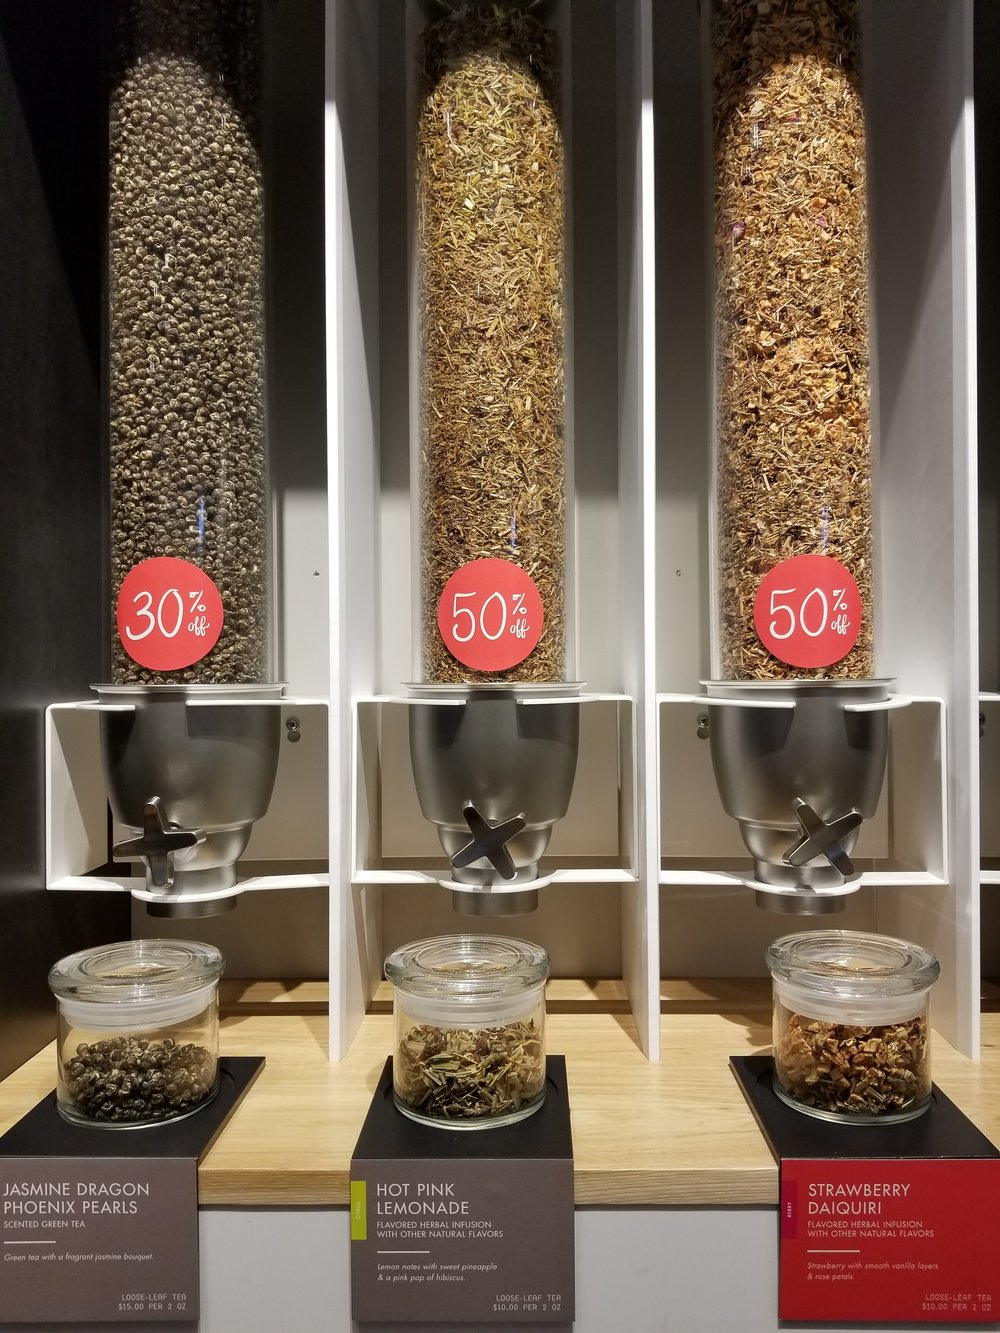 Bellevue Square Teavana 23 Sept 2017 - 8.jpg